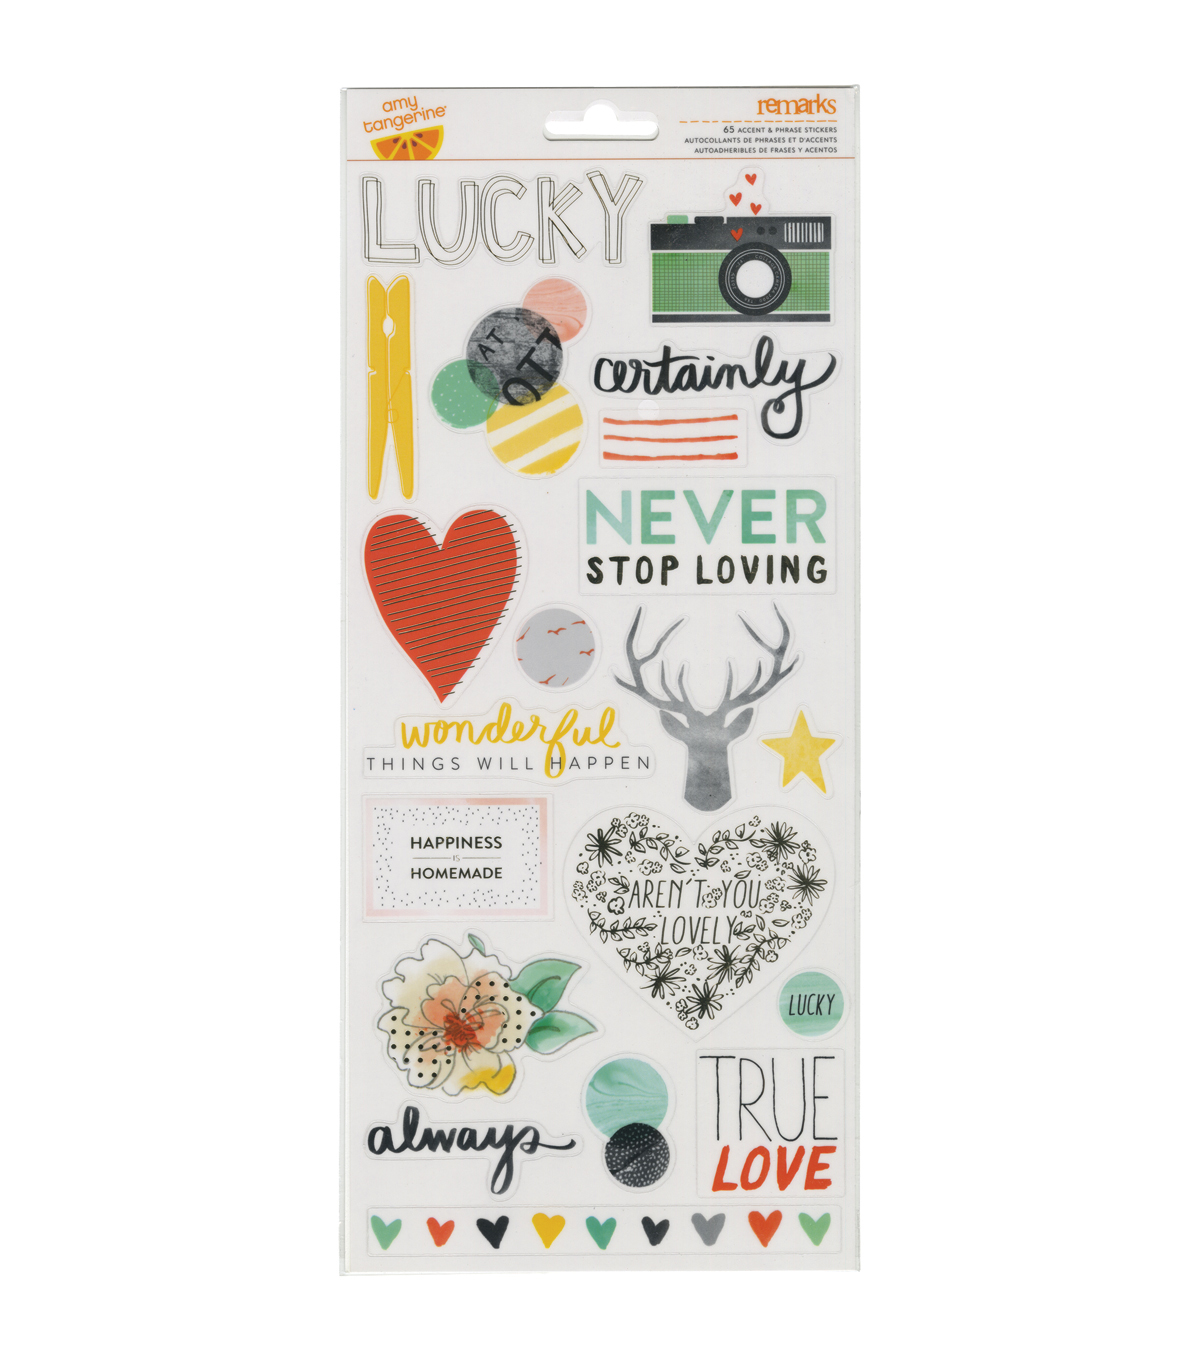 American Crafts Amy Tangerine Stitched Accent & Phrase Stickers